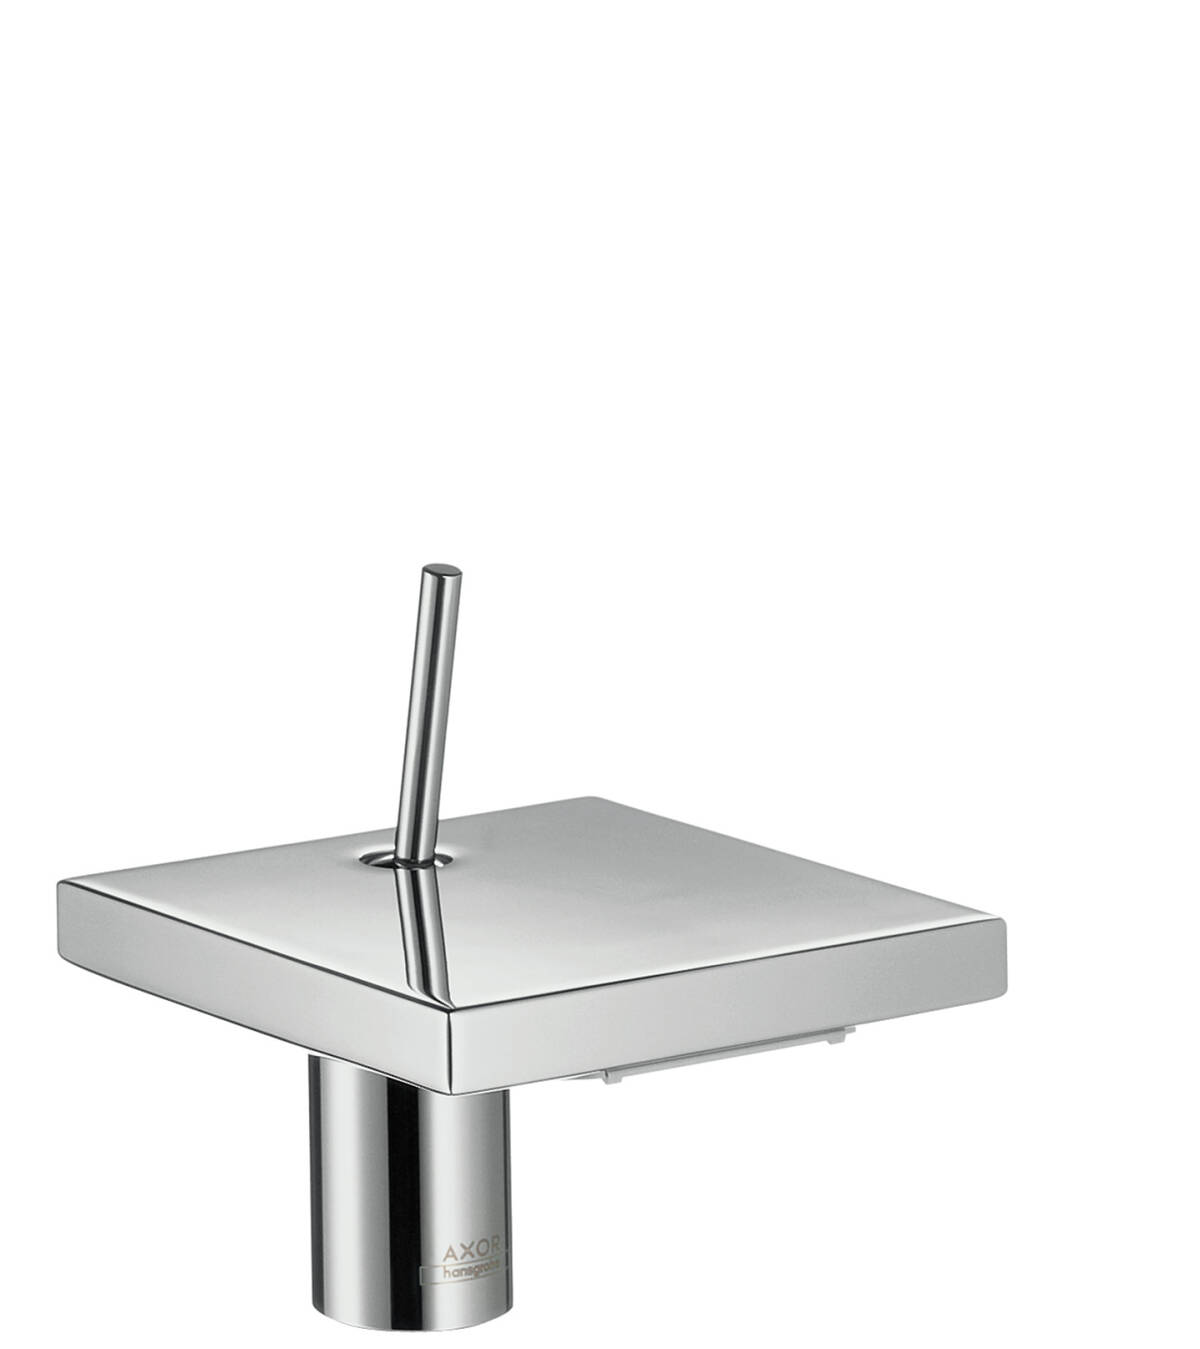 Single lever basin mixer 80 with waste set, Stainless Steel Optic, 10077800